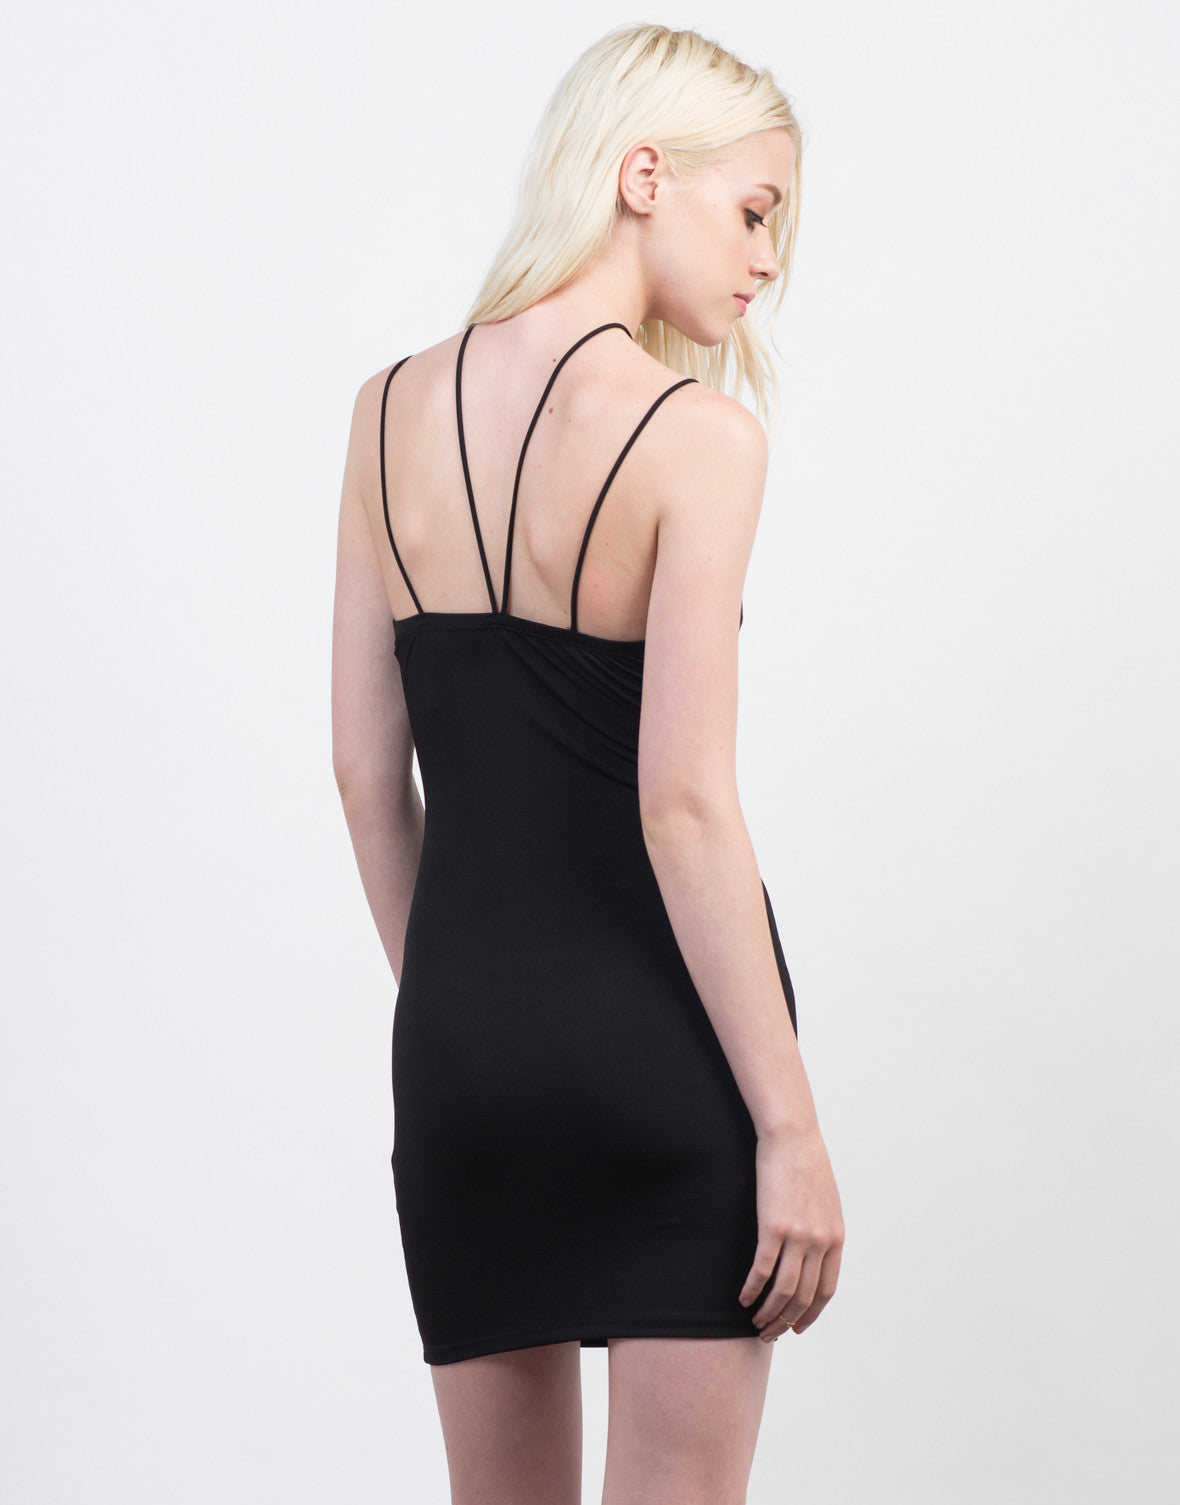 Back View of Strappy Black Dress